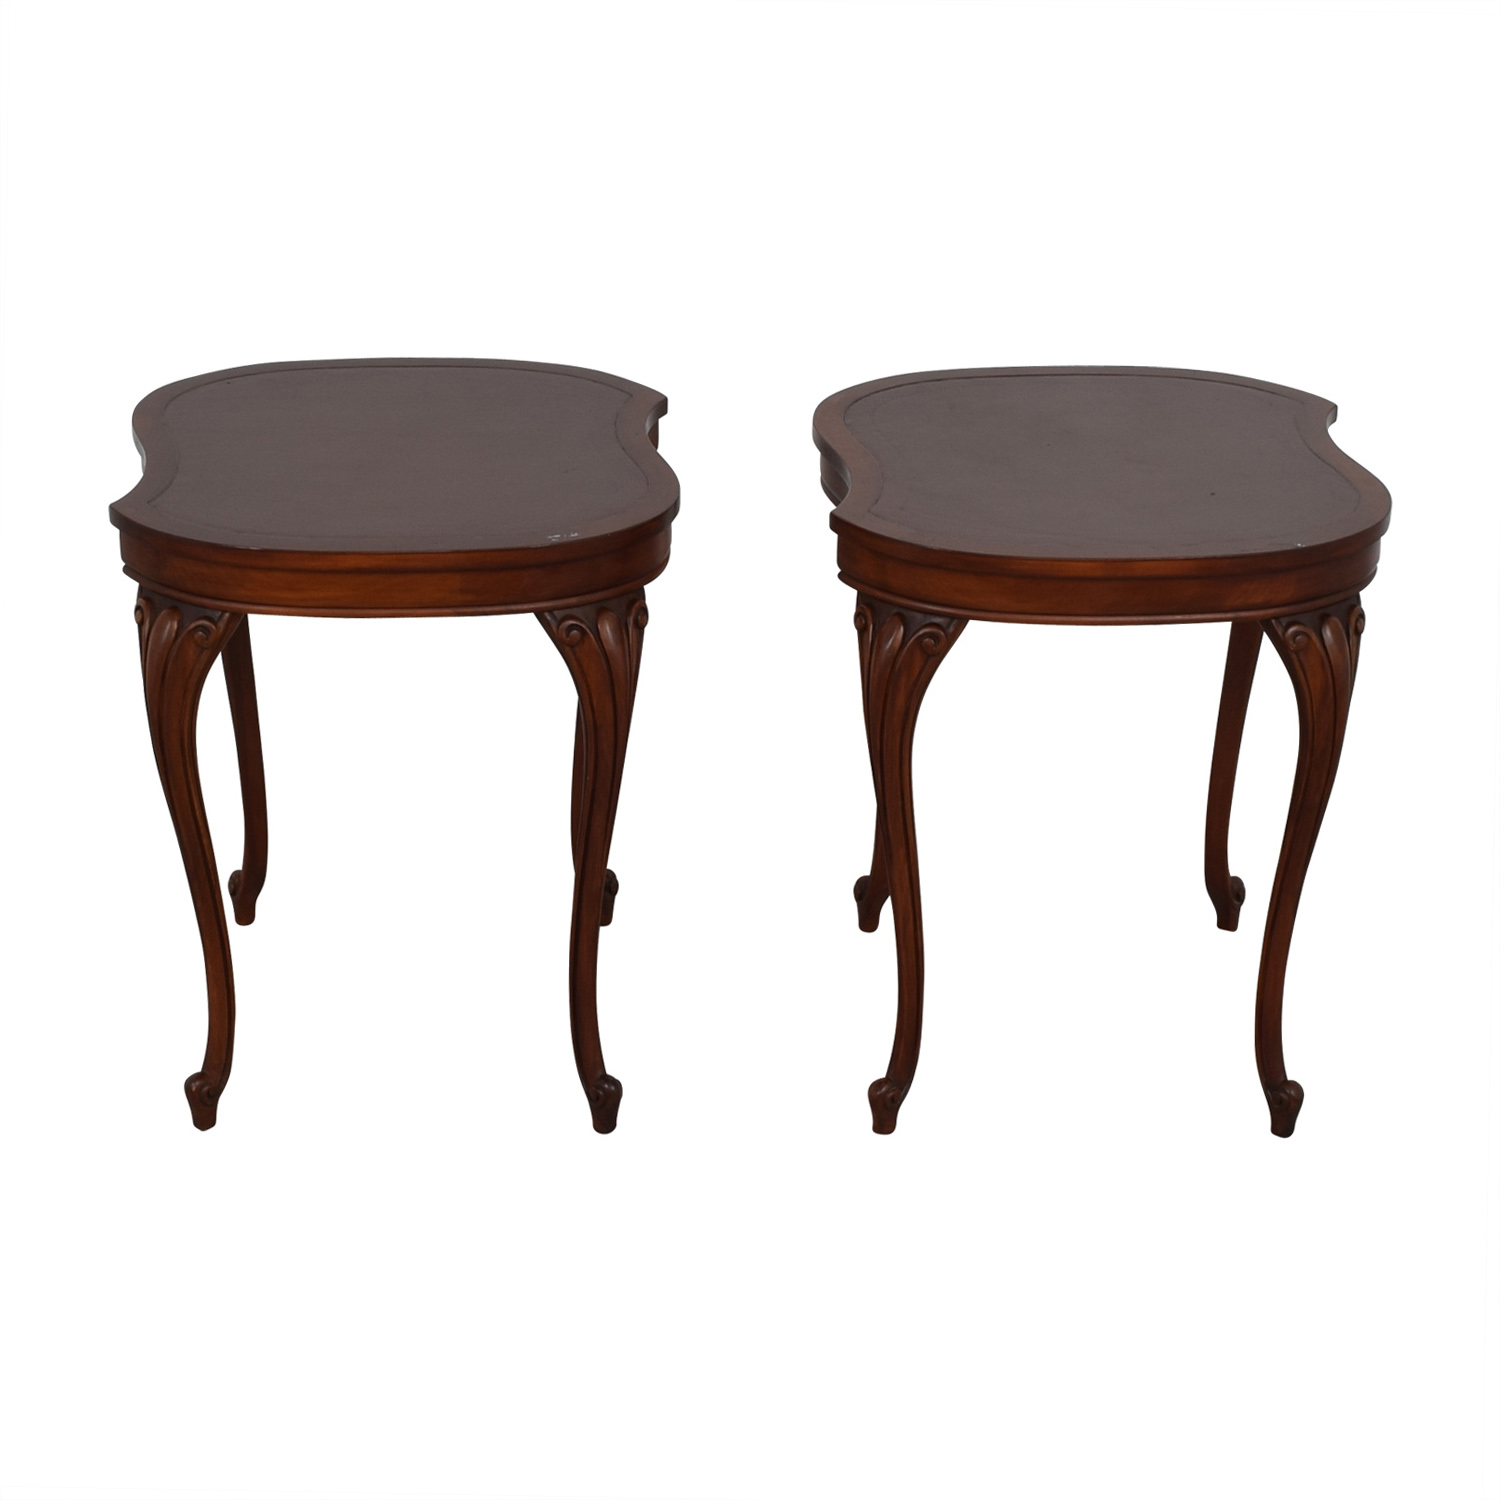 Antique Carved Queen Anne Walnut End Tables nj